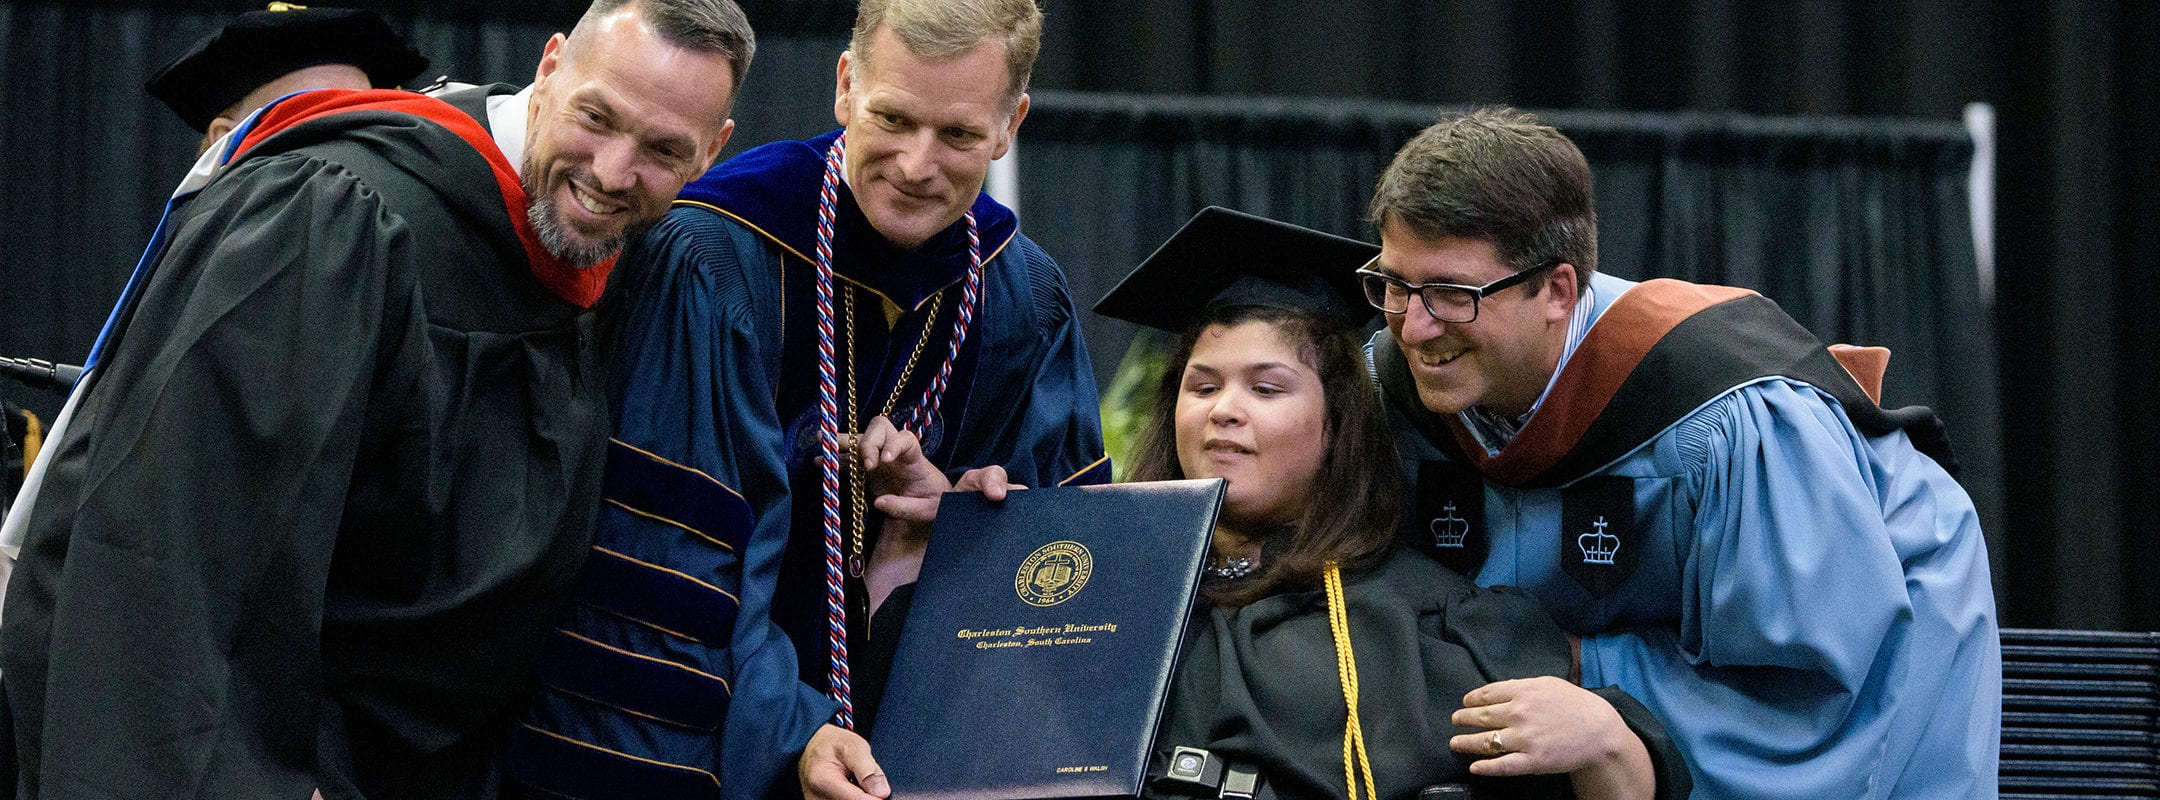 Student Caroline Walsh, in her wheelchair, receiving her diploma on stage at graduation with the CSU president and others.